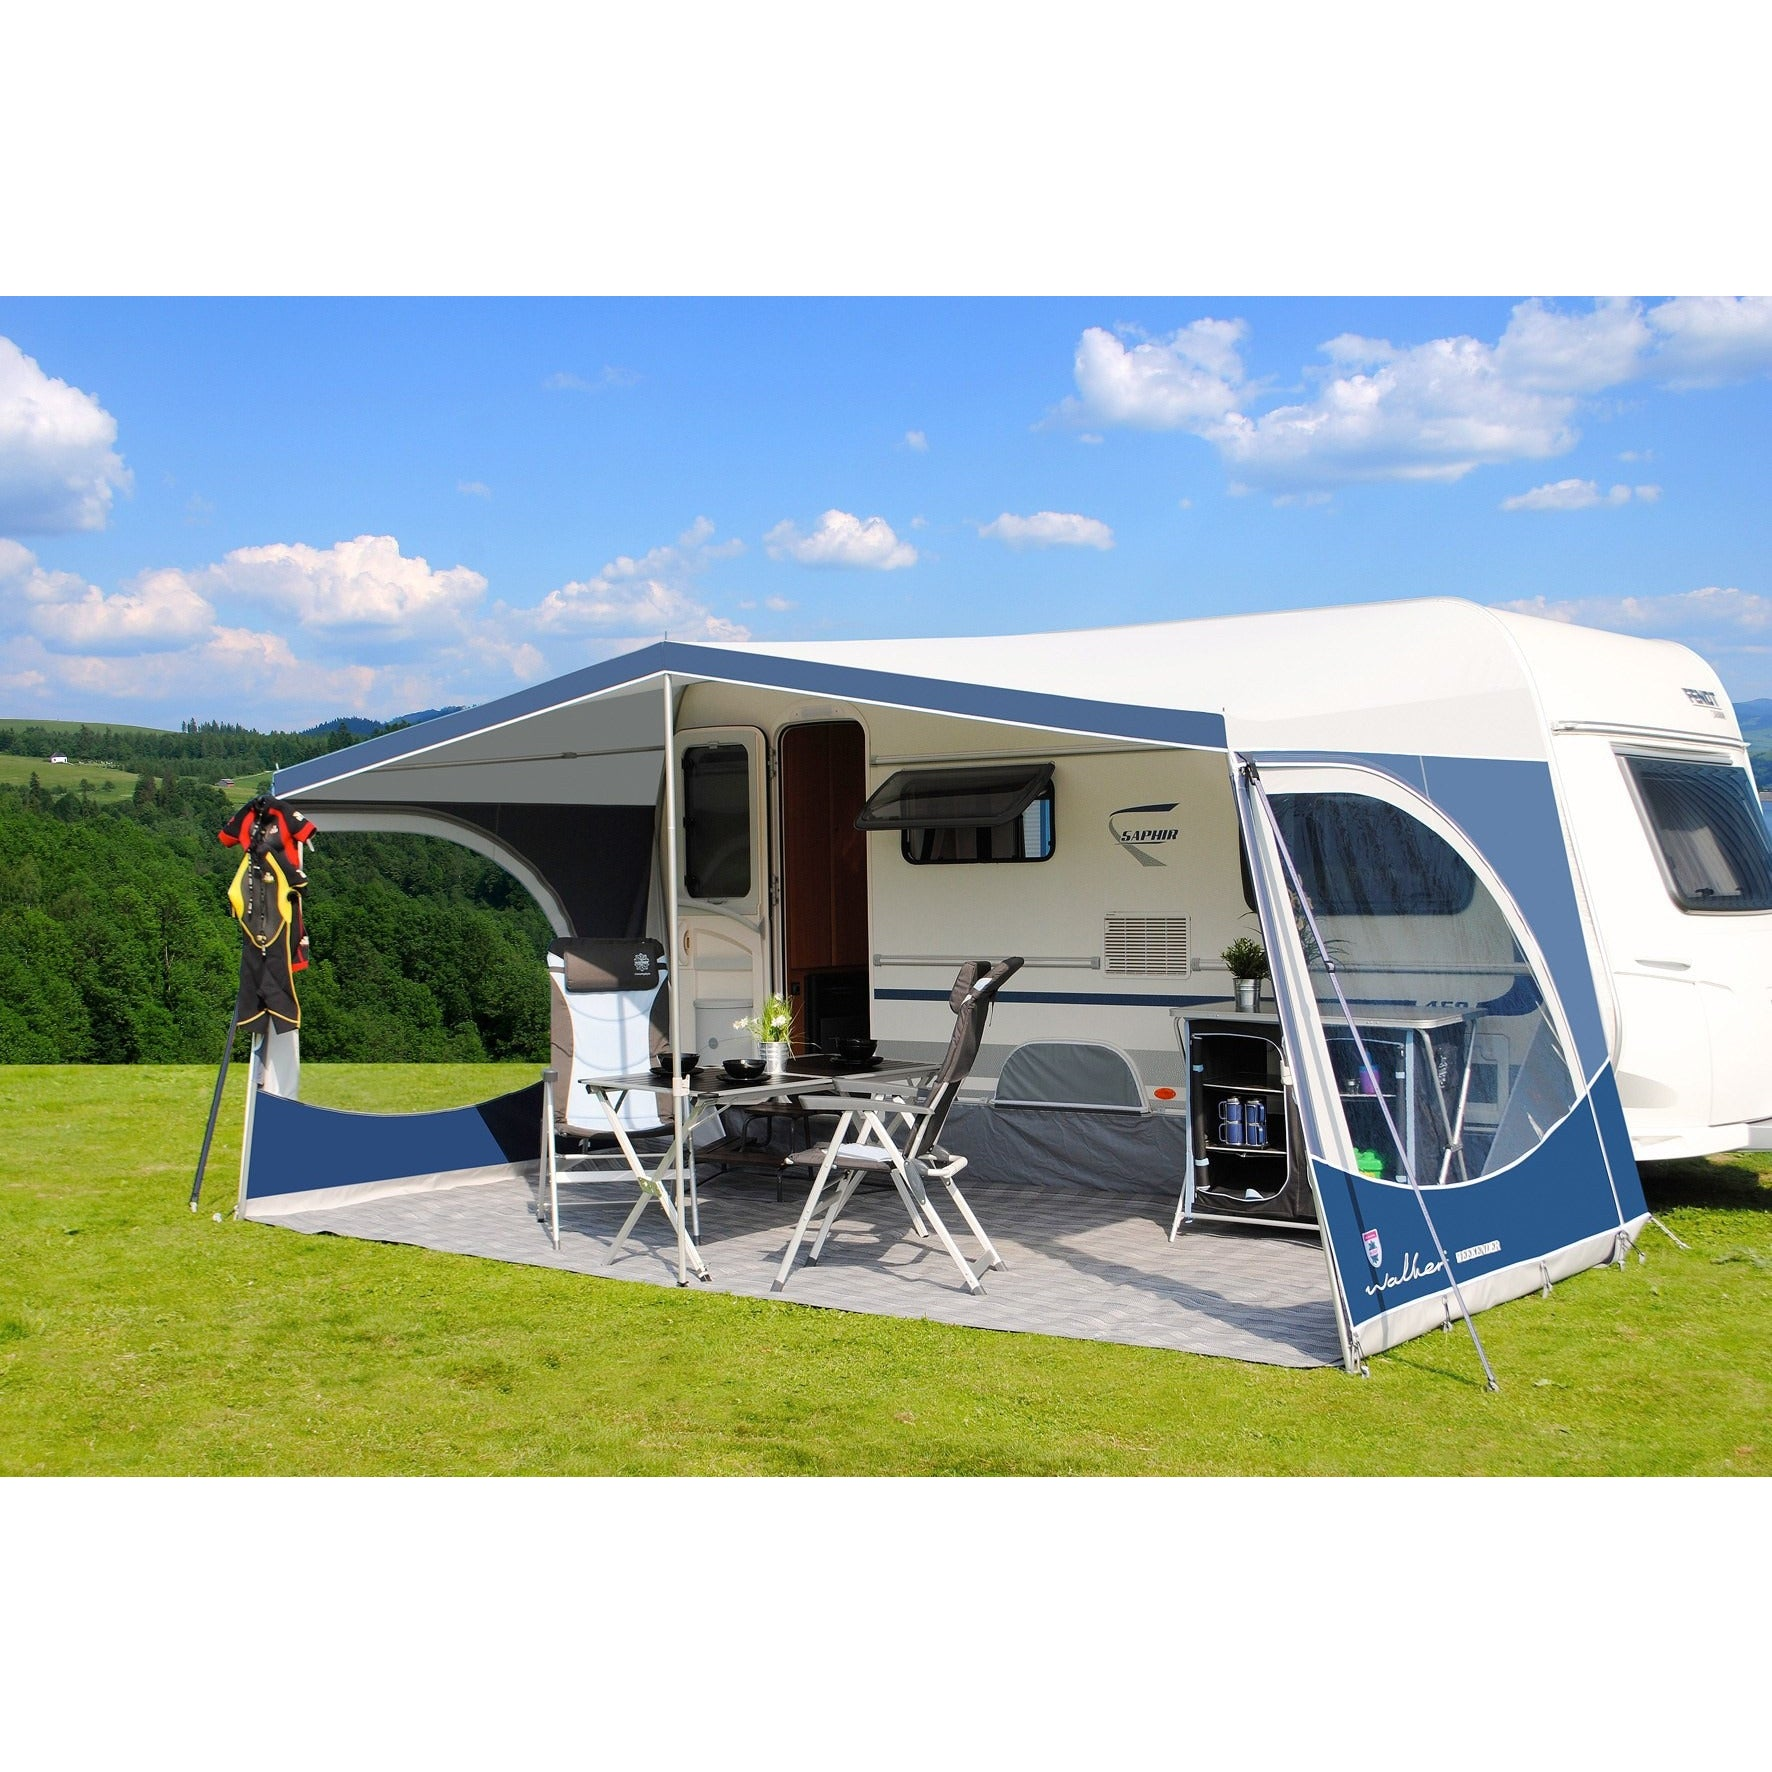 plus elegant awning outdoor of motorized sunsetter awnings striped and